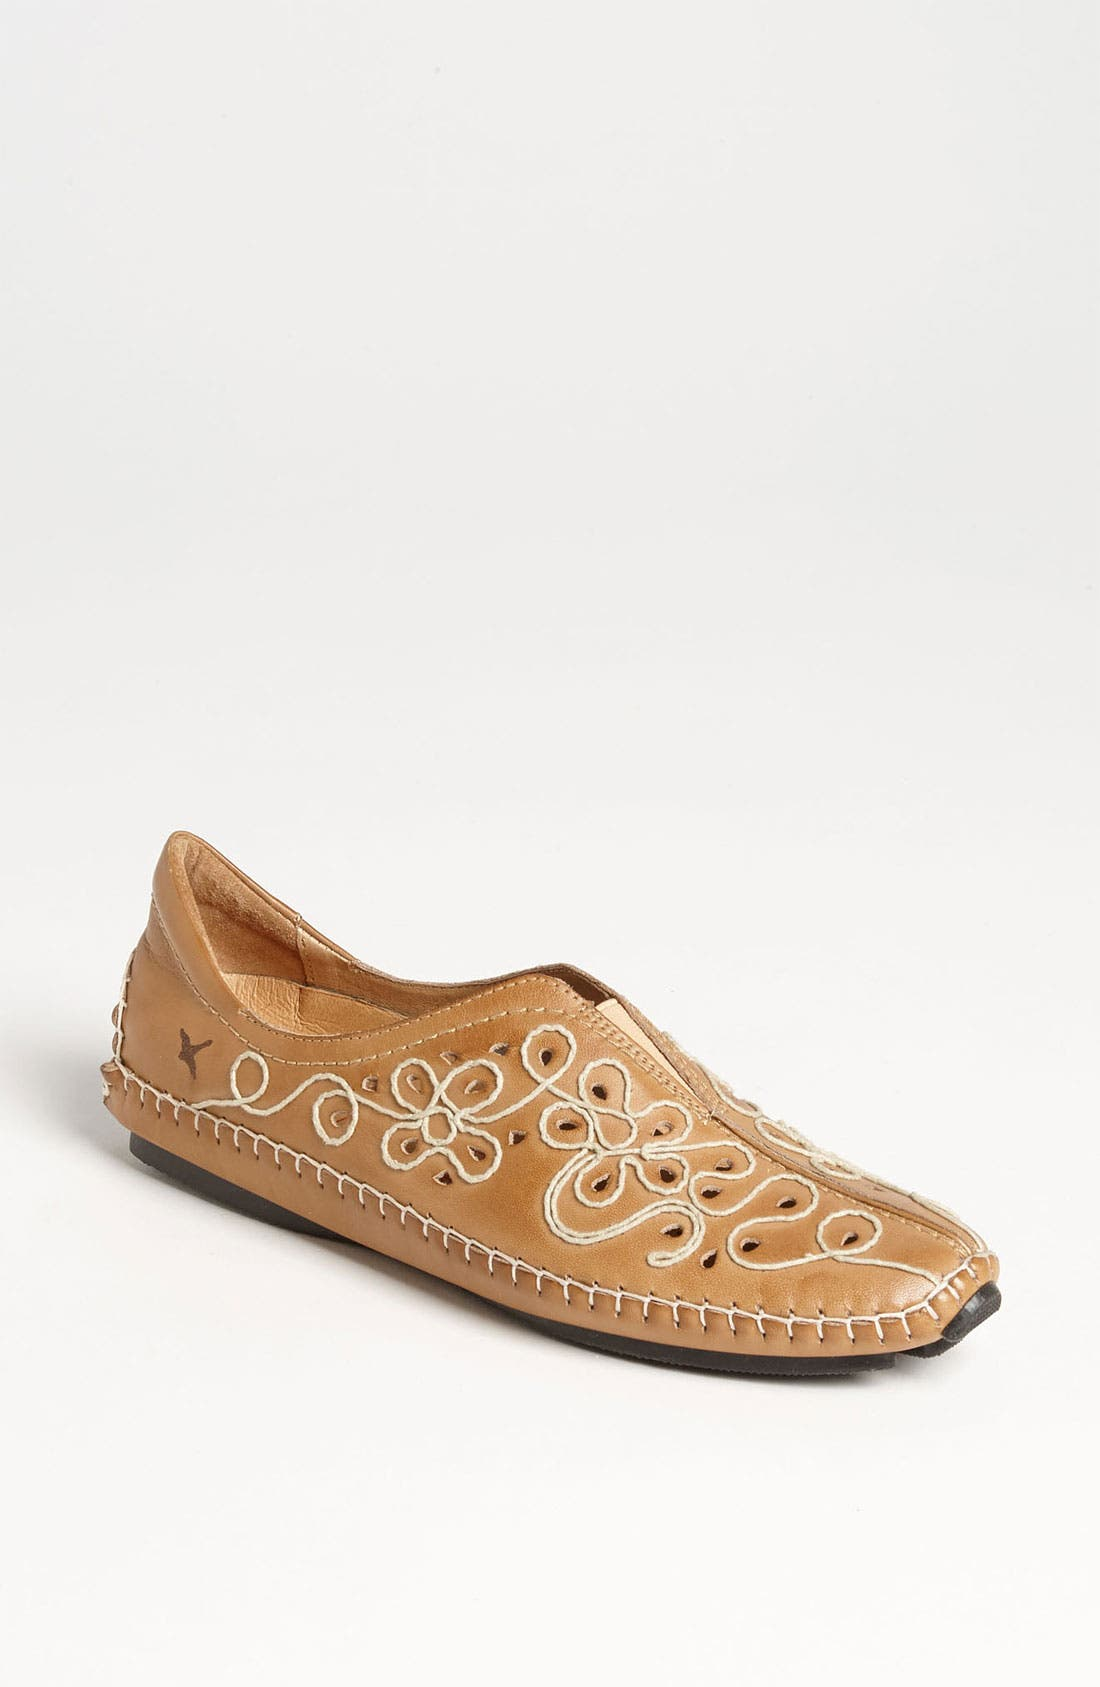 Alternate Image 1 Selected - PIKOLINOS 'Jerez' Embroidered Loafer